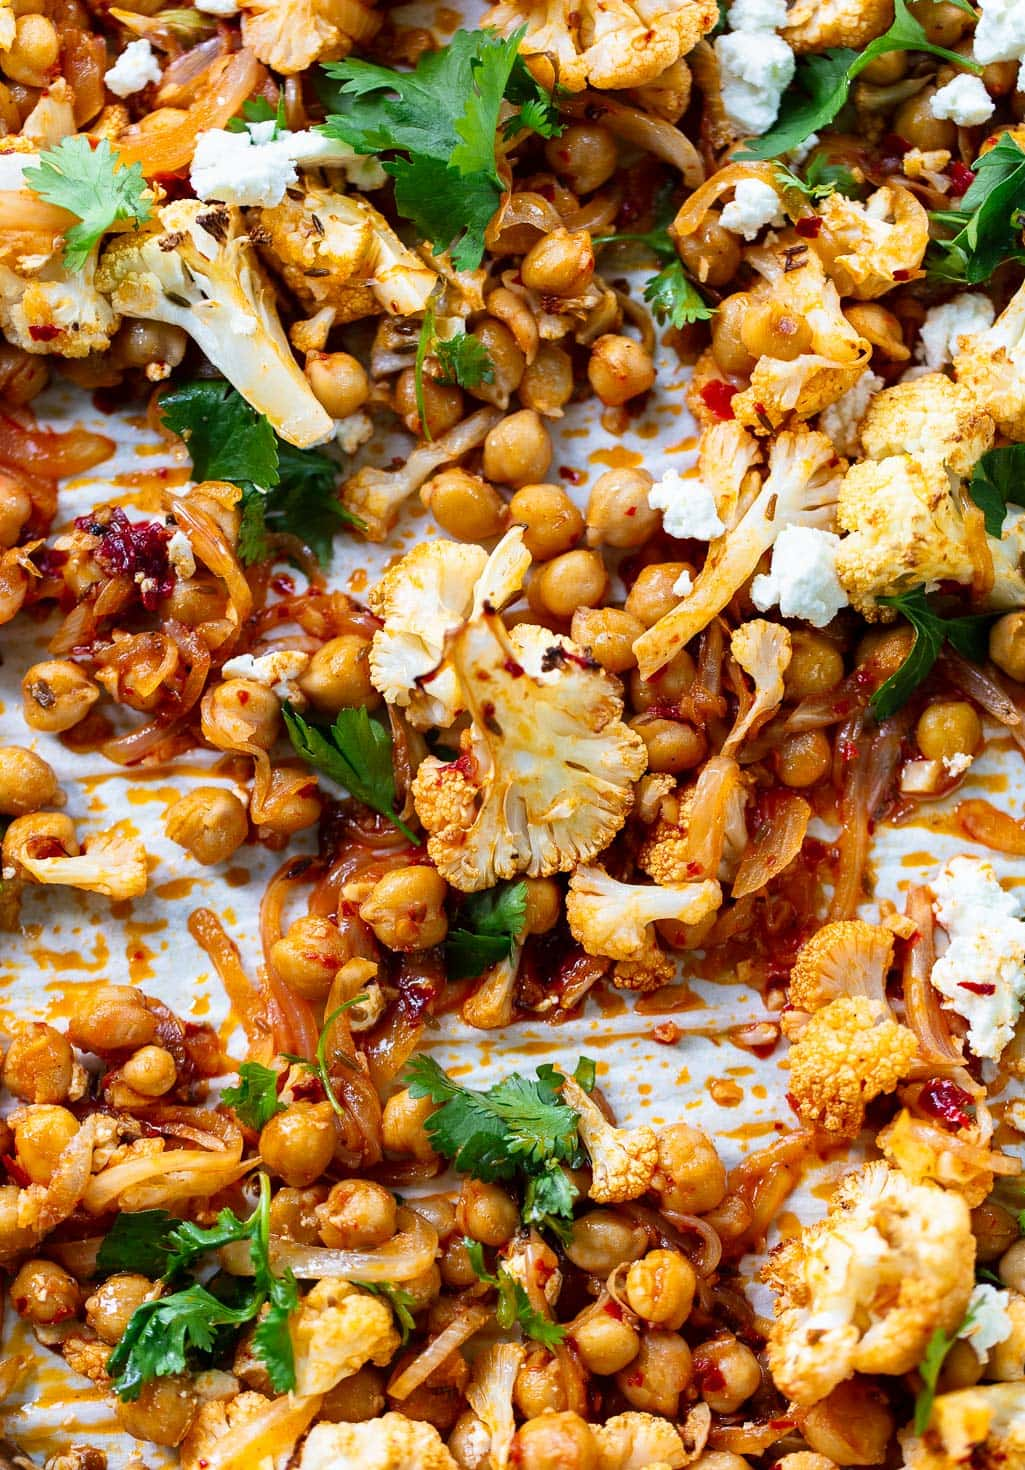 Roasted Cauliflower Salad with Harissa Chickpeas